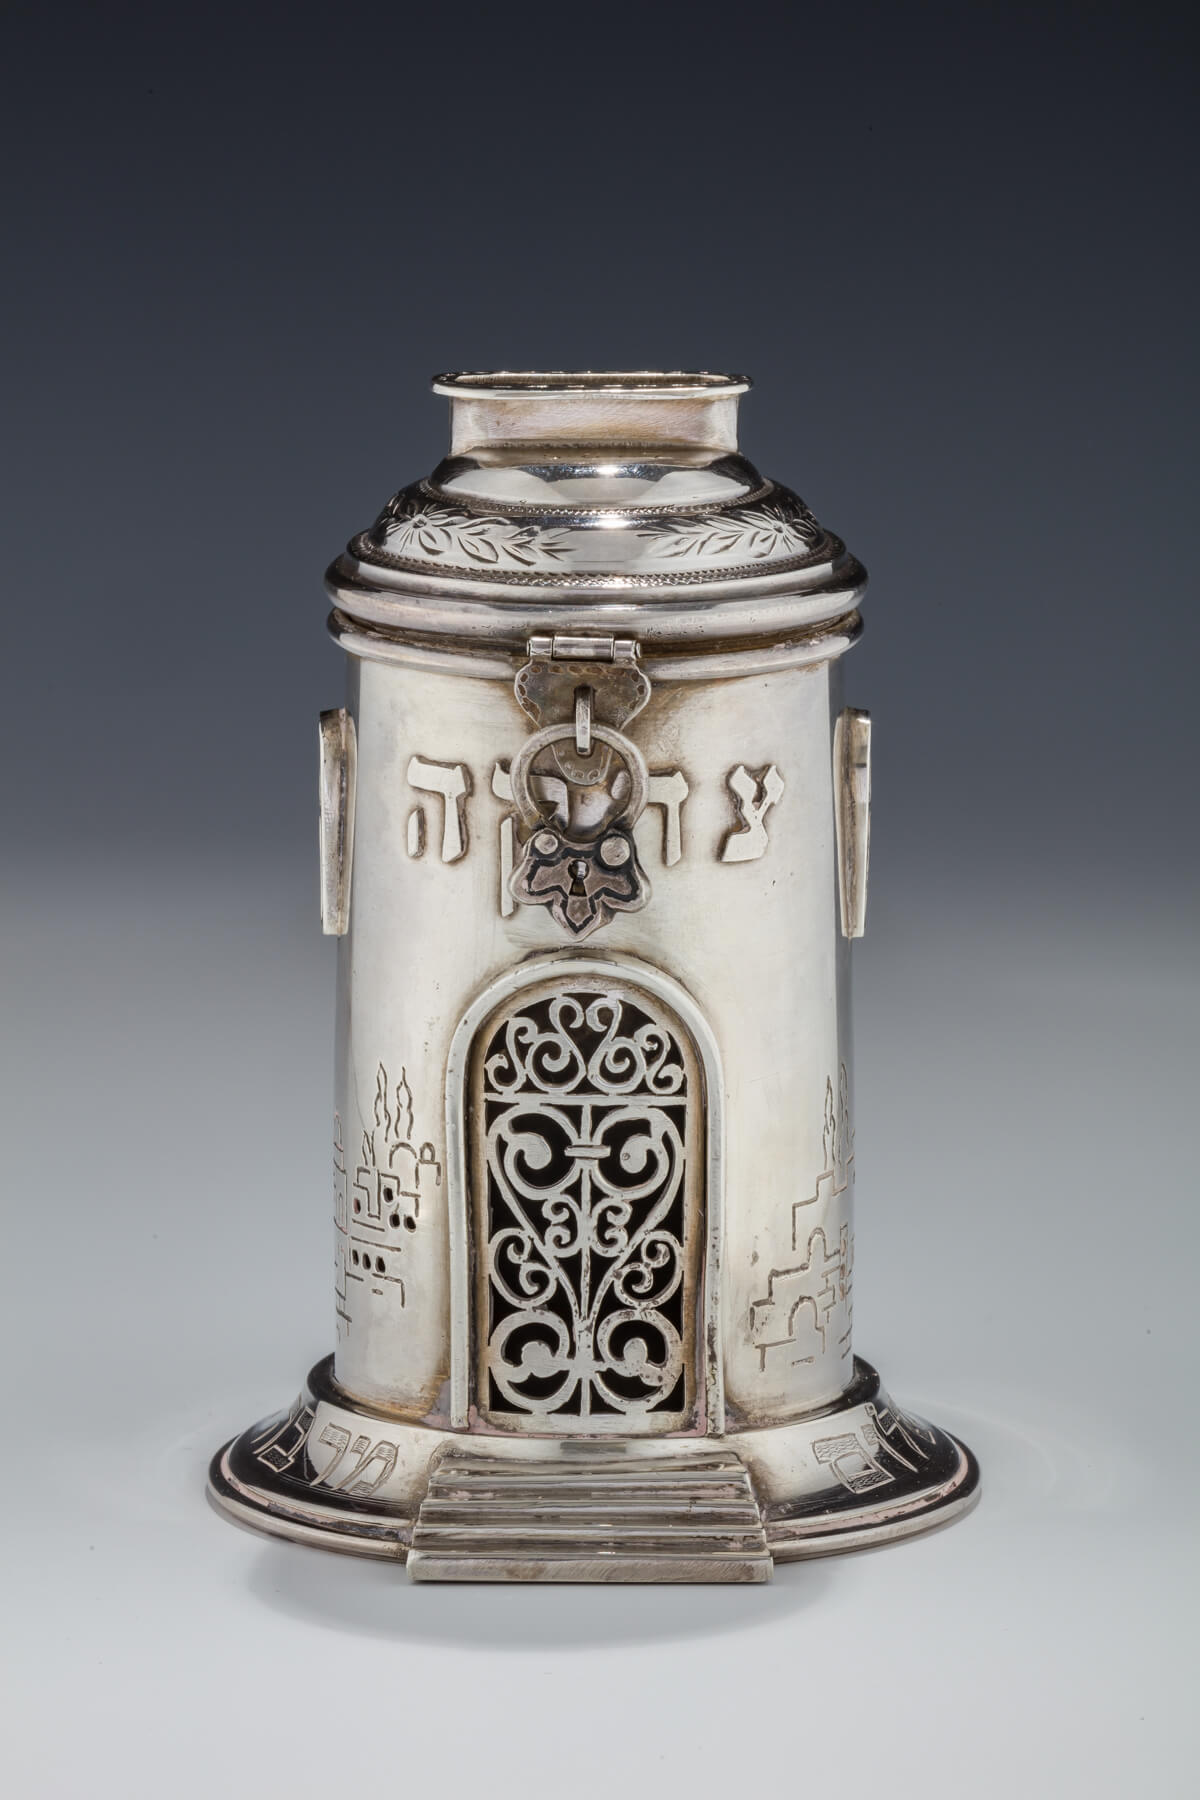 120. Sterling Silver Charity Container by Shuki Freiman